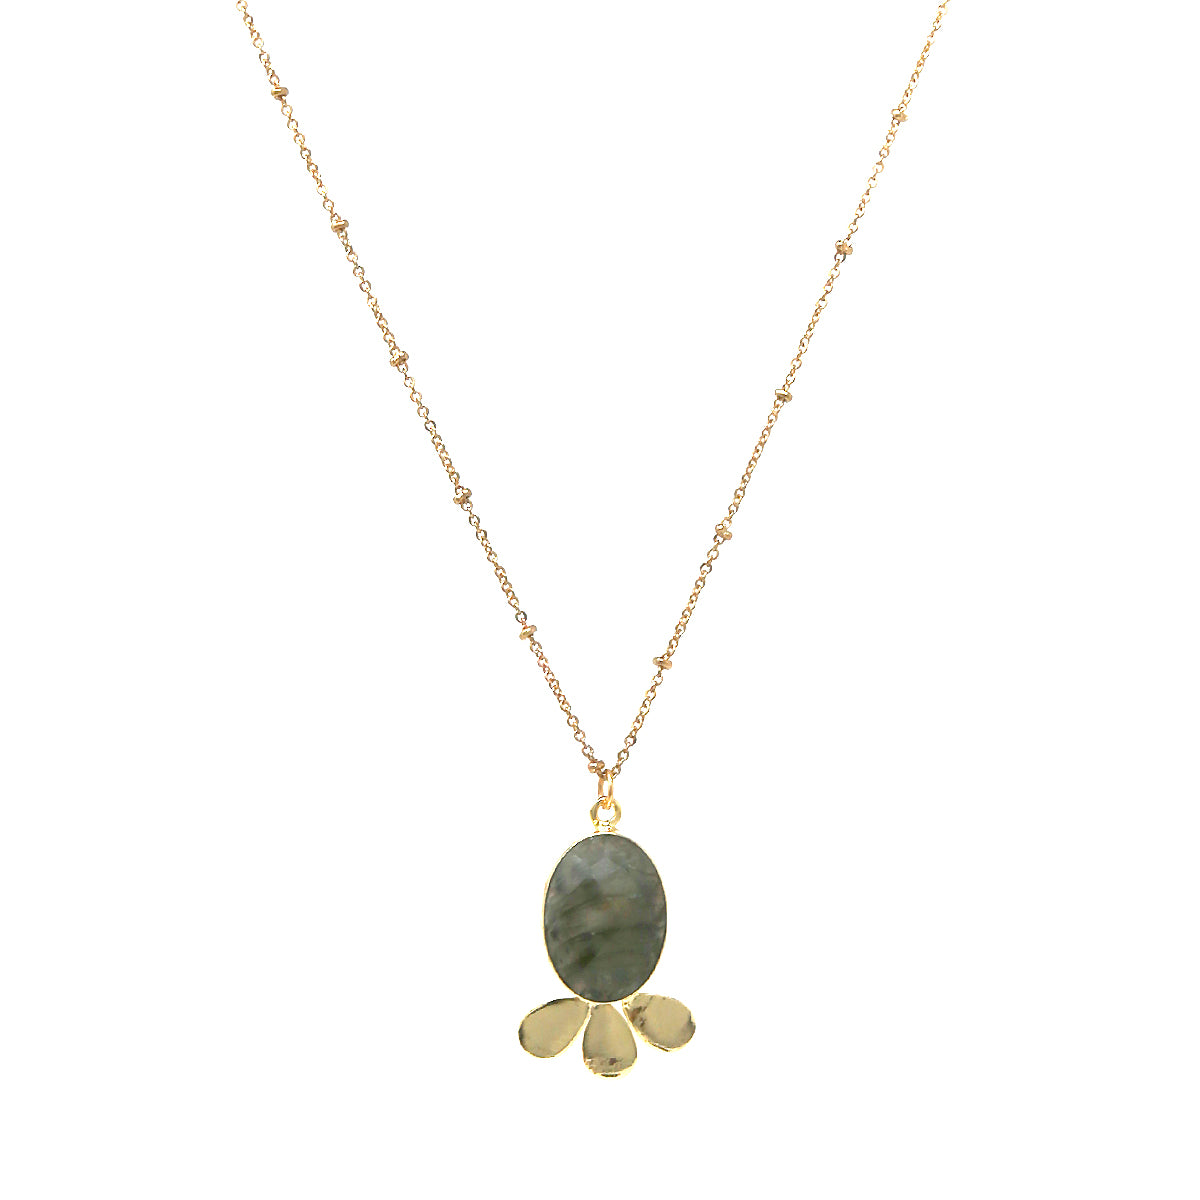 Faceted Oval Natural Stone Pendant Long Necklace